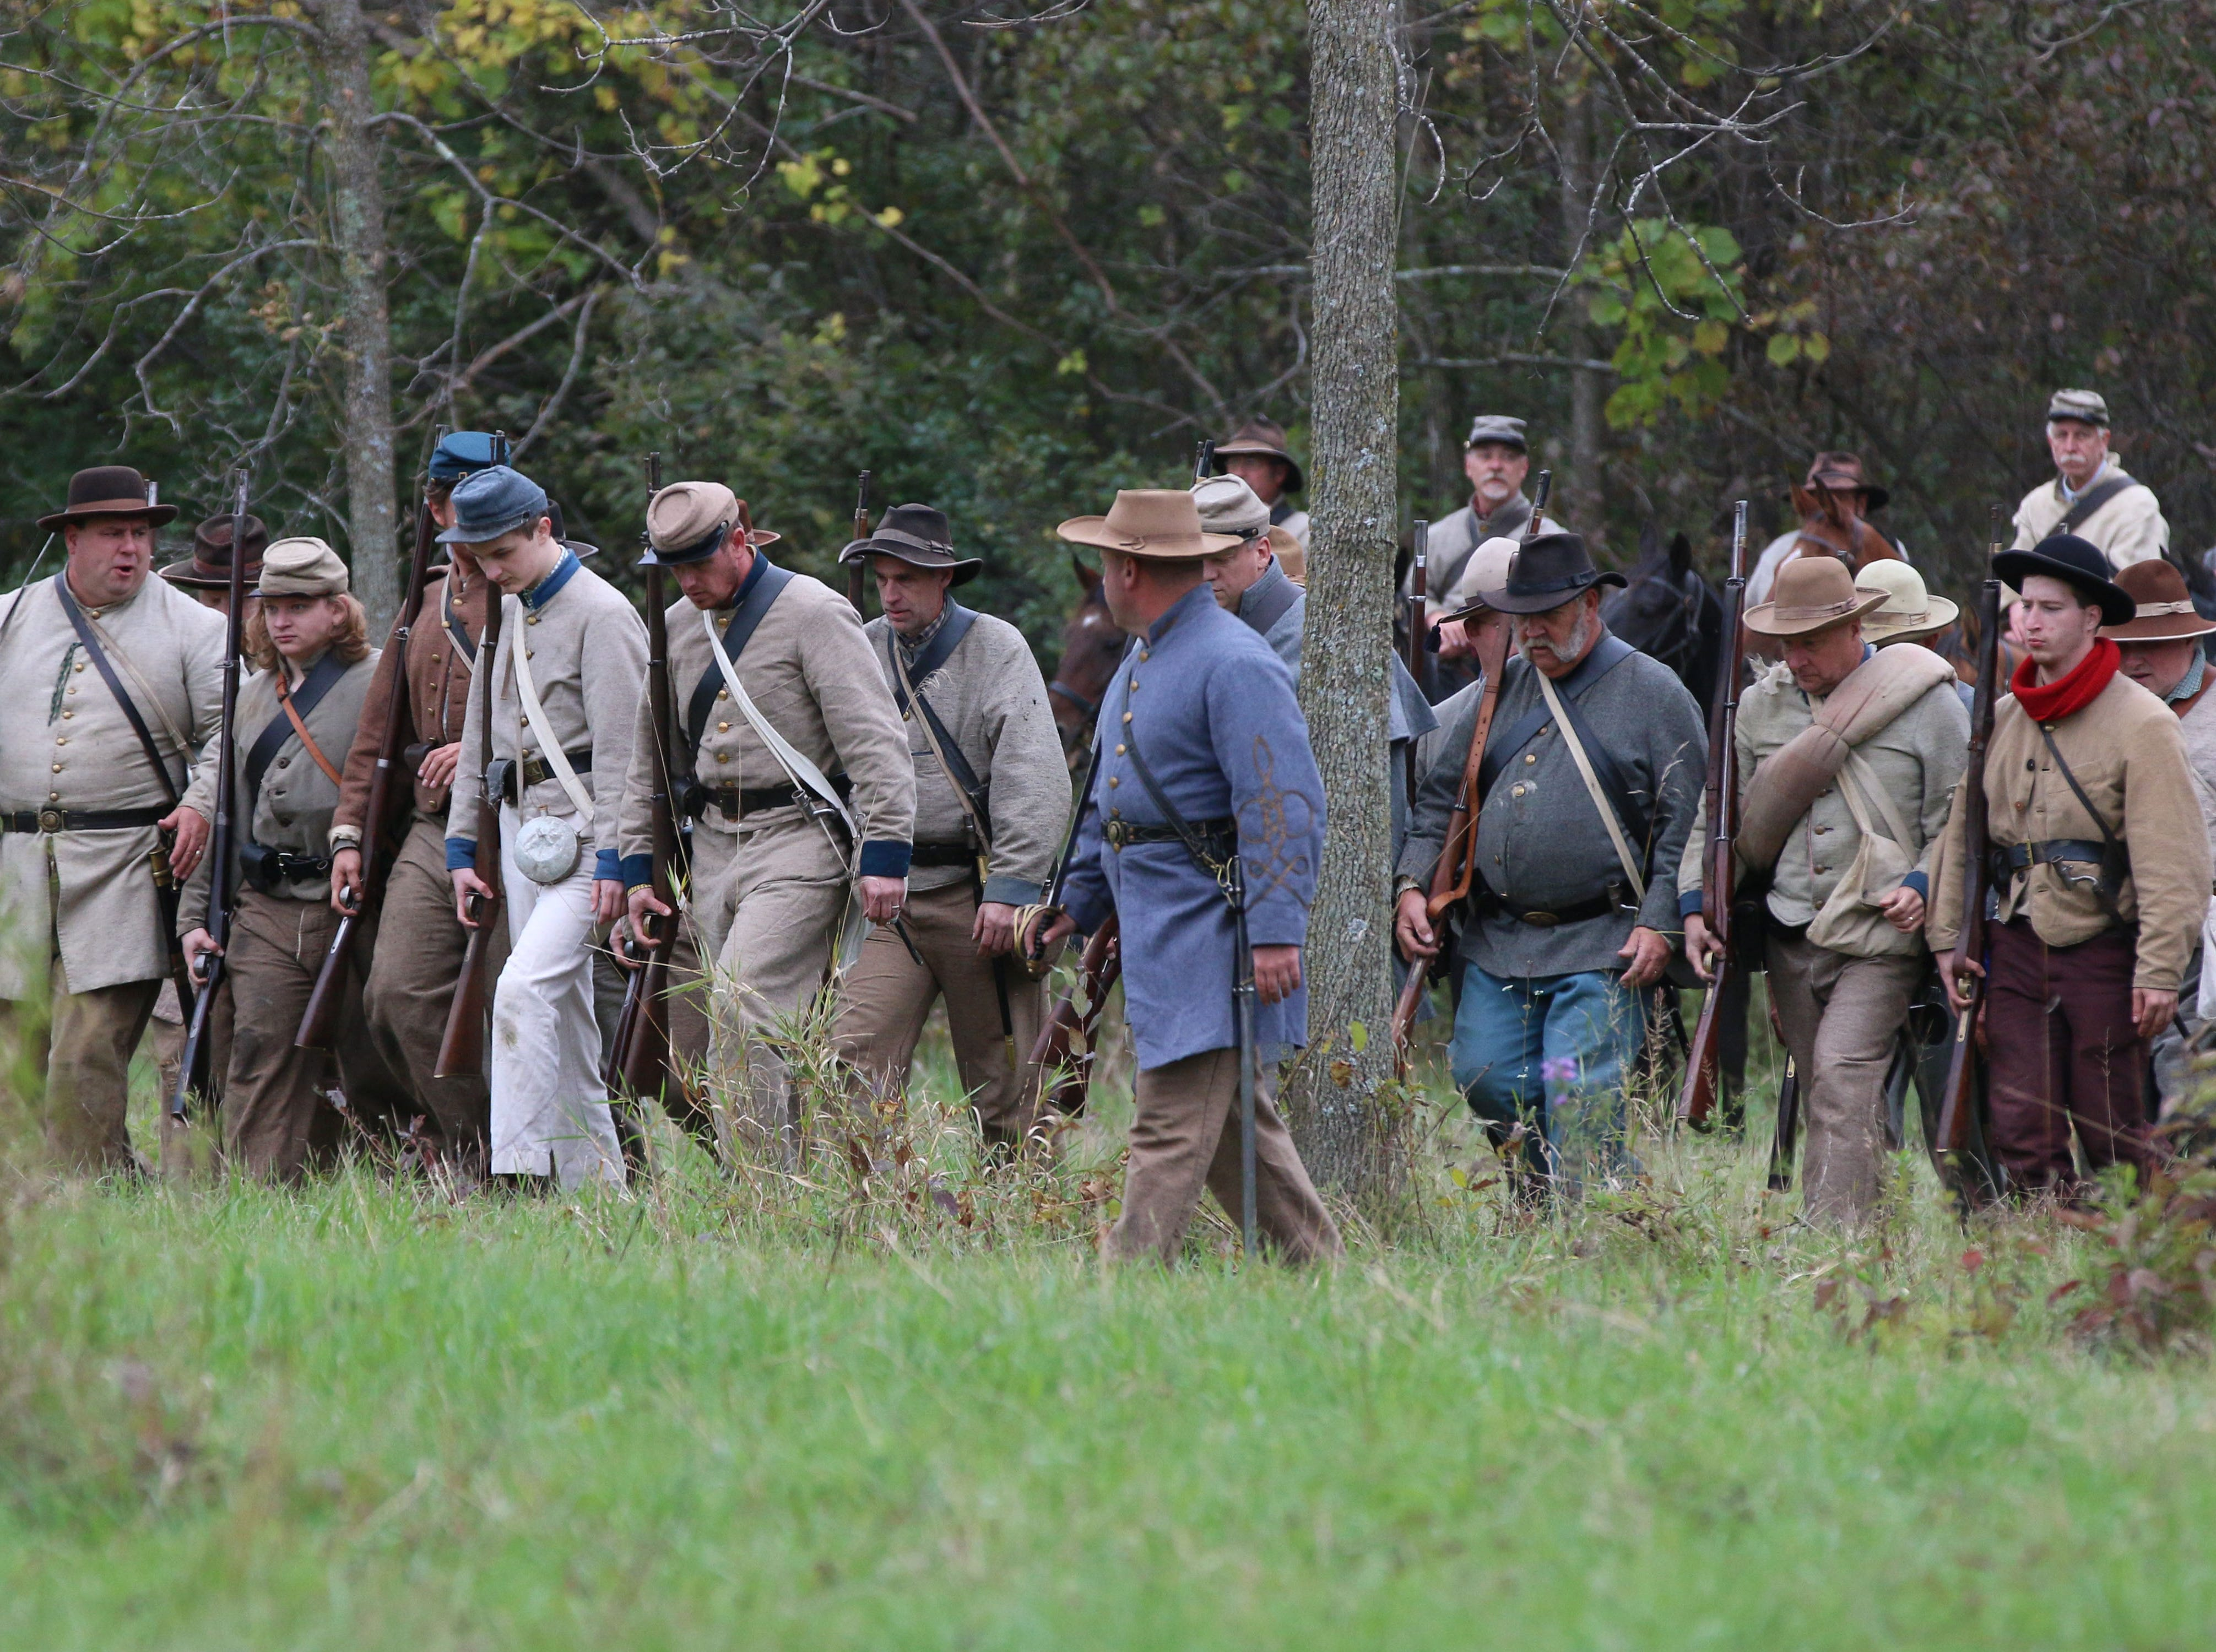 Confederate soldiers line up following battle during the Civil War Weekend at the Wade House, Saturday September 29, 2018, in Greenbush, Wis.